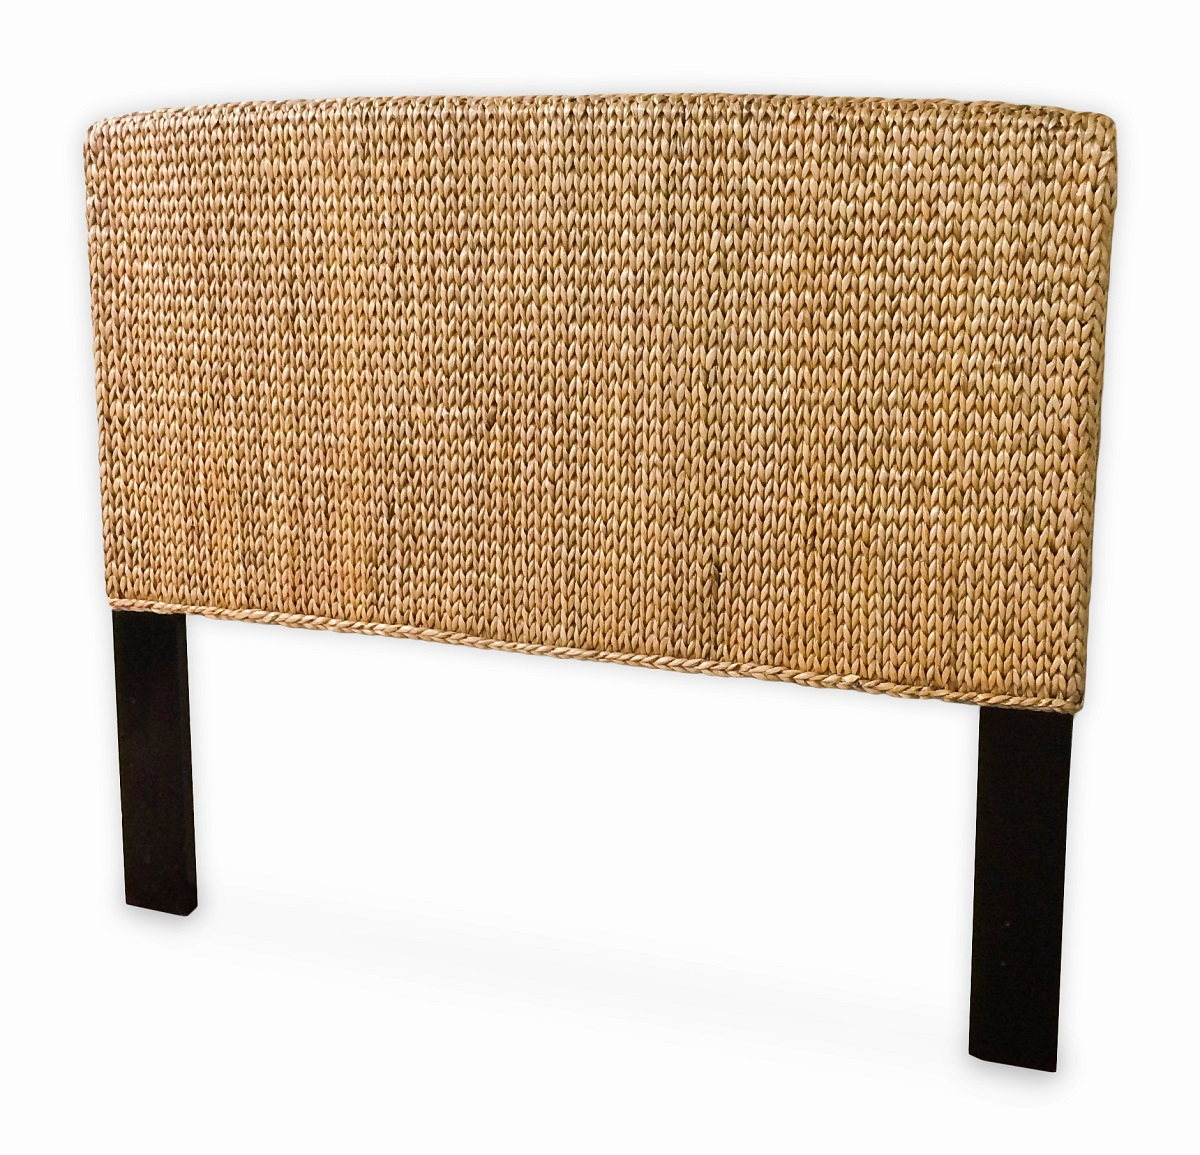 Seagrass Queen Headboard Miramar